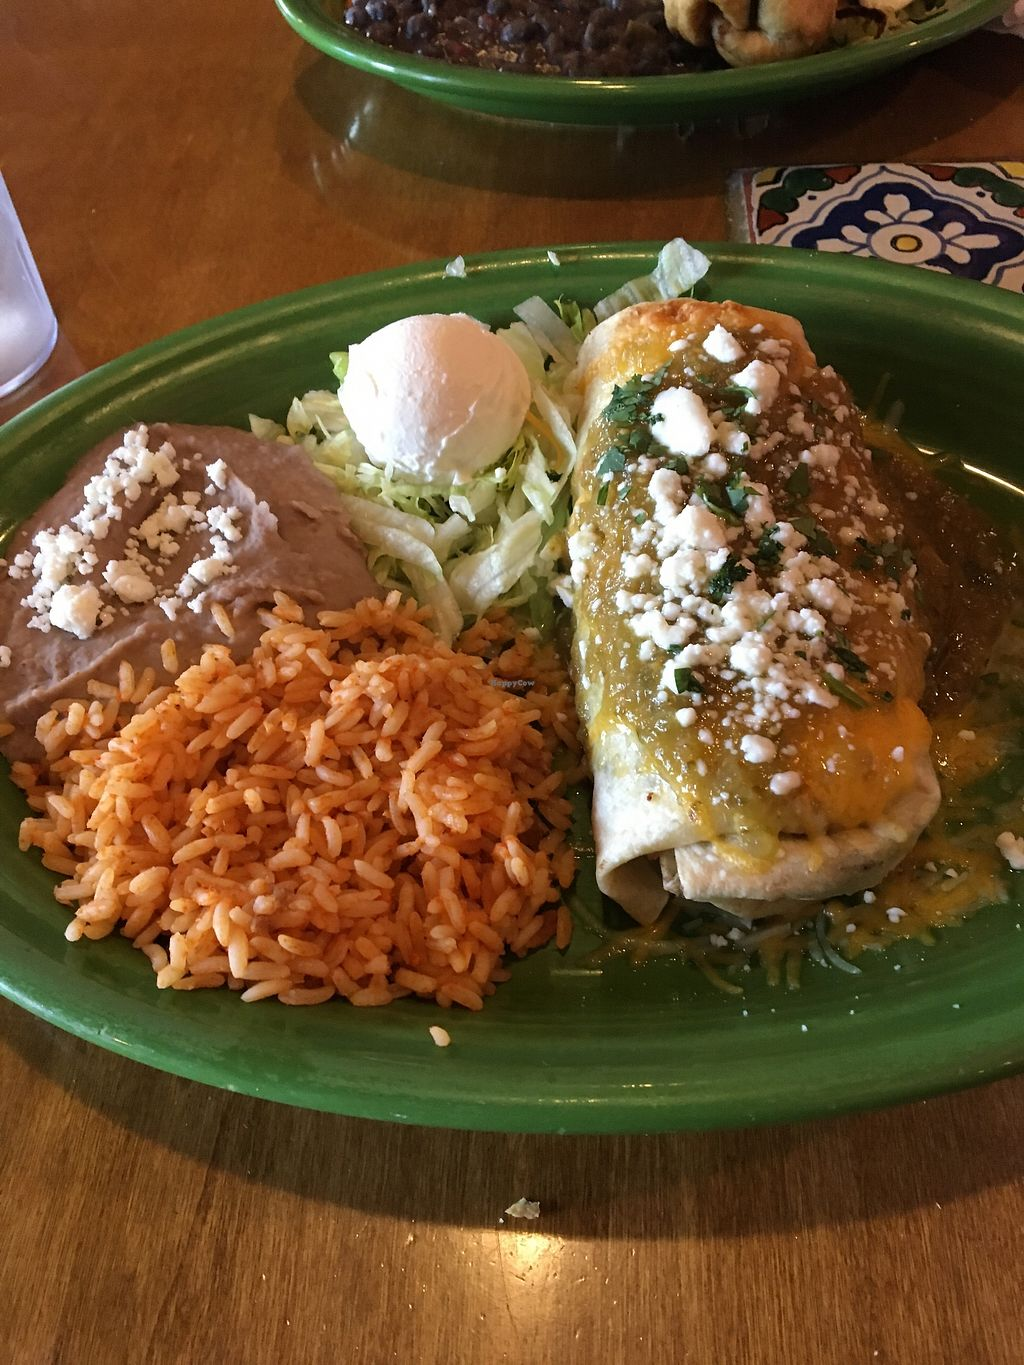 """Photo of Miguel's Mexican Restaurant  by <a href=""""/members/profile/sophiefrenchfry"""">sophiefrenchfry</a> <br/>Burrito Verde with Vegetarian Black Beans <br/> June 20, 2017  - <a href='/contact/abuse/image/30051/271507'>Report</a>"""